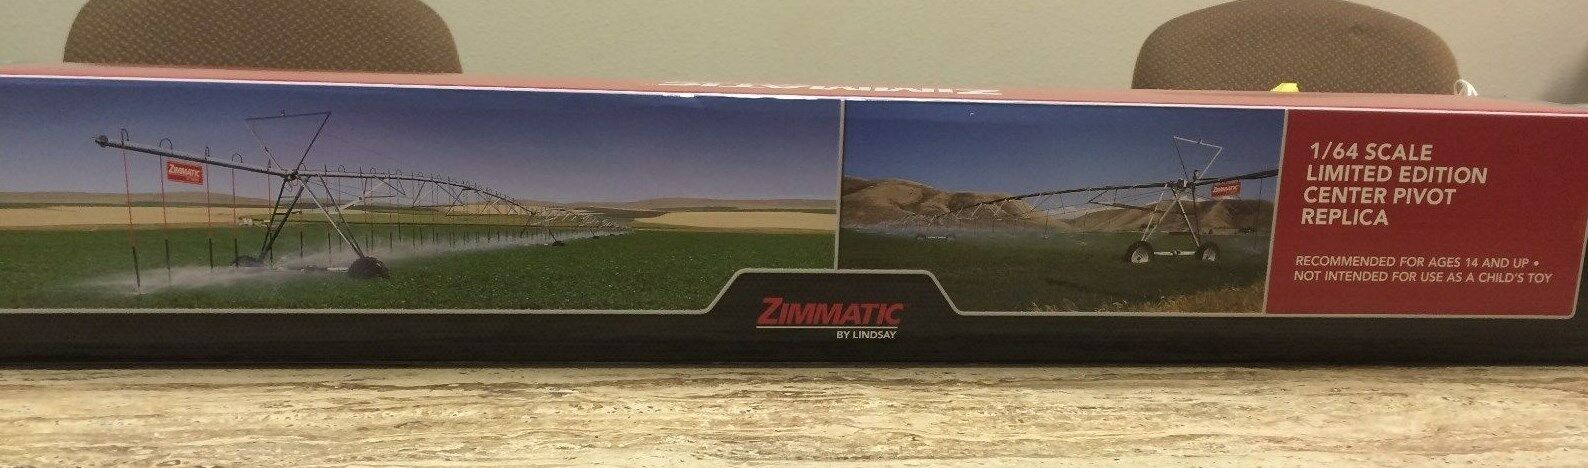 Small Replica Display Pivot Zimmatic Lindsay Metal Resin